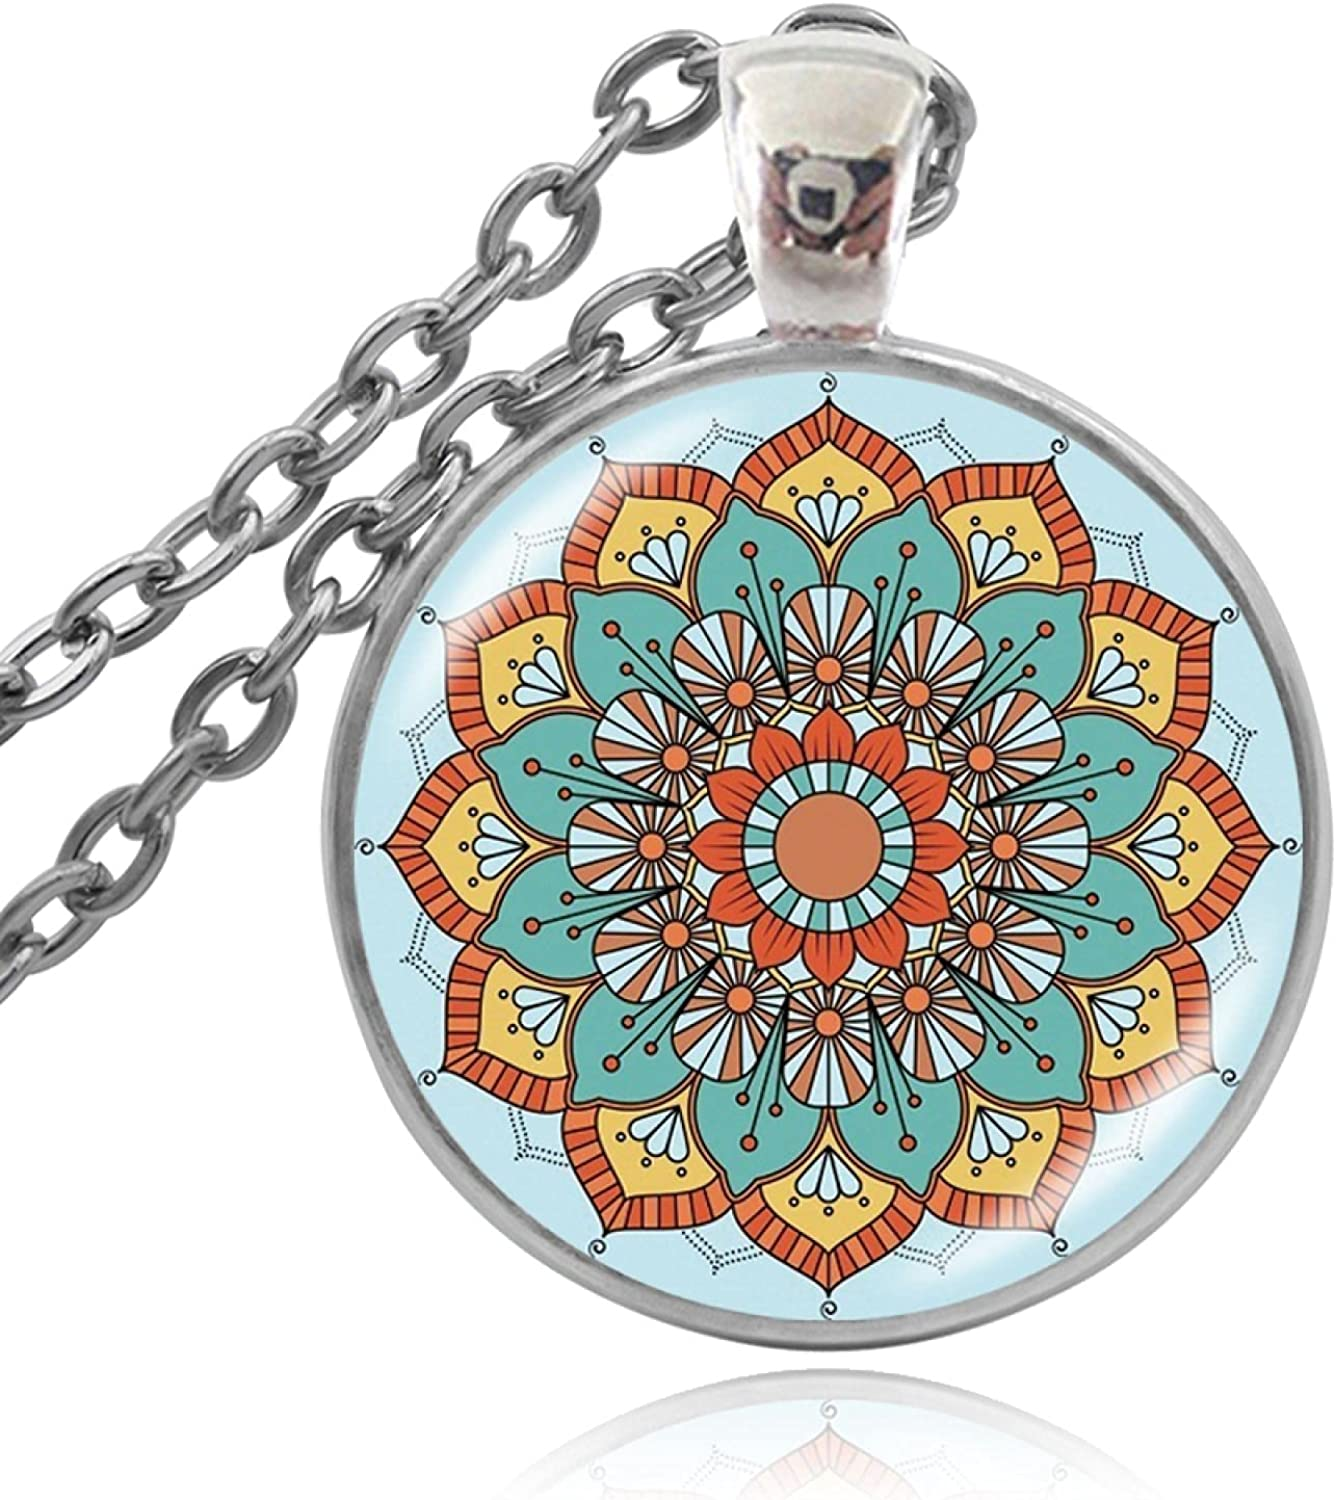 Yoga Pendant Necklaces Don't miss the Max 60% OFF campaign Handmade Jewelry B Necklace Lotus Mandala